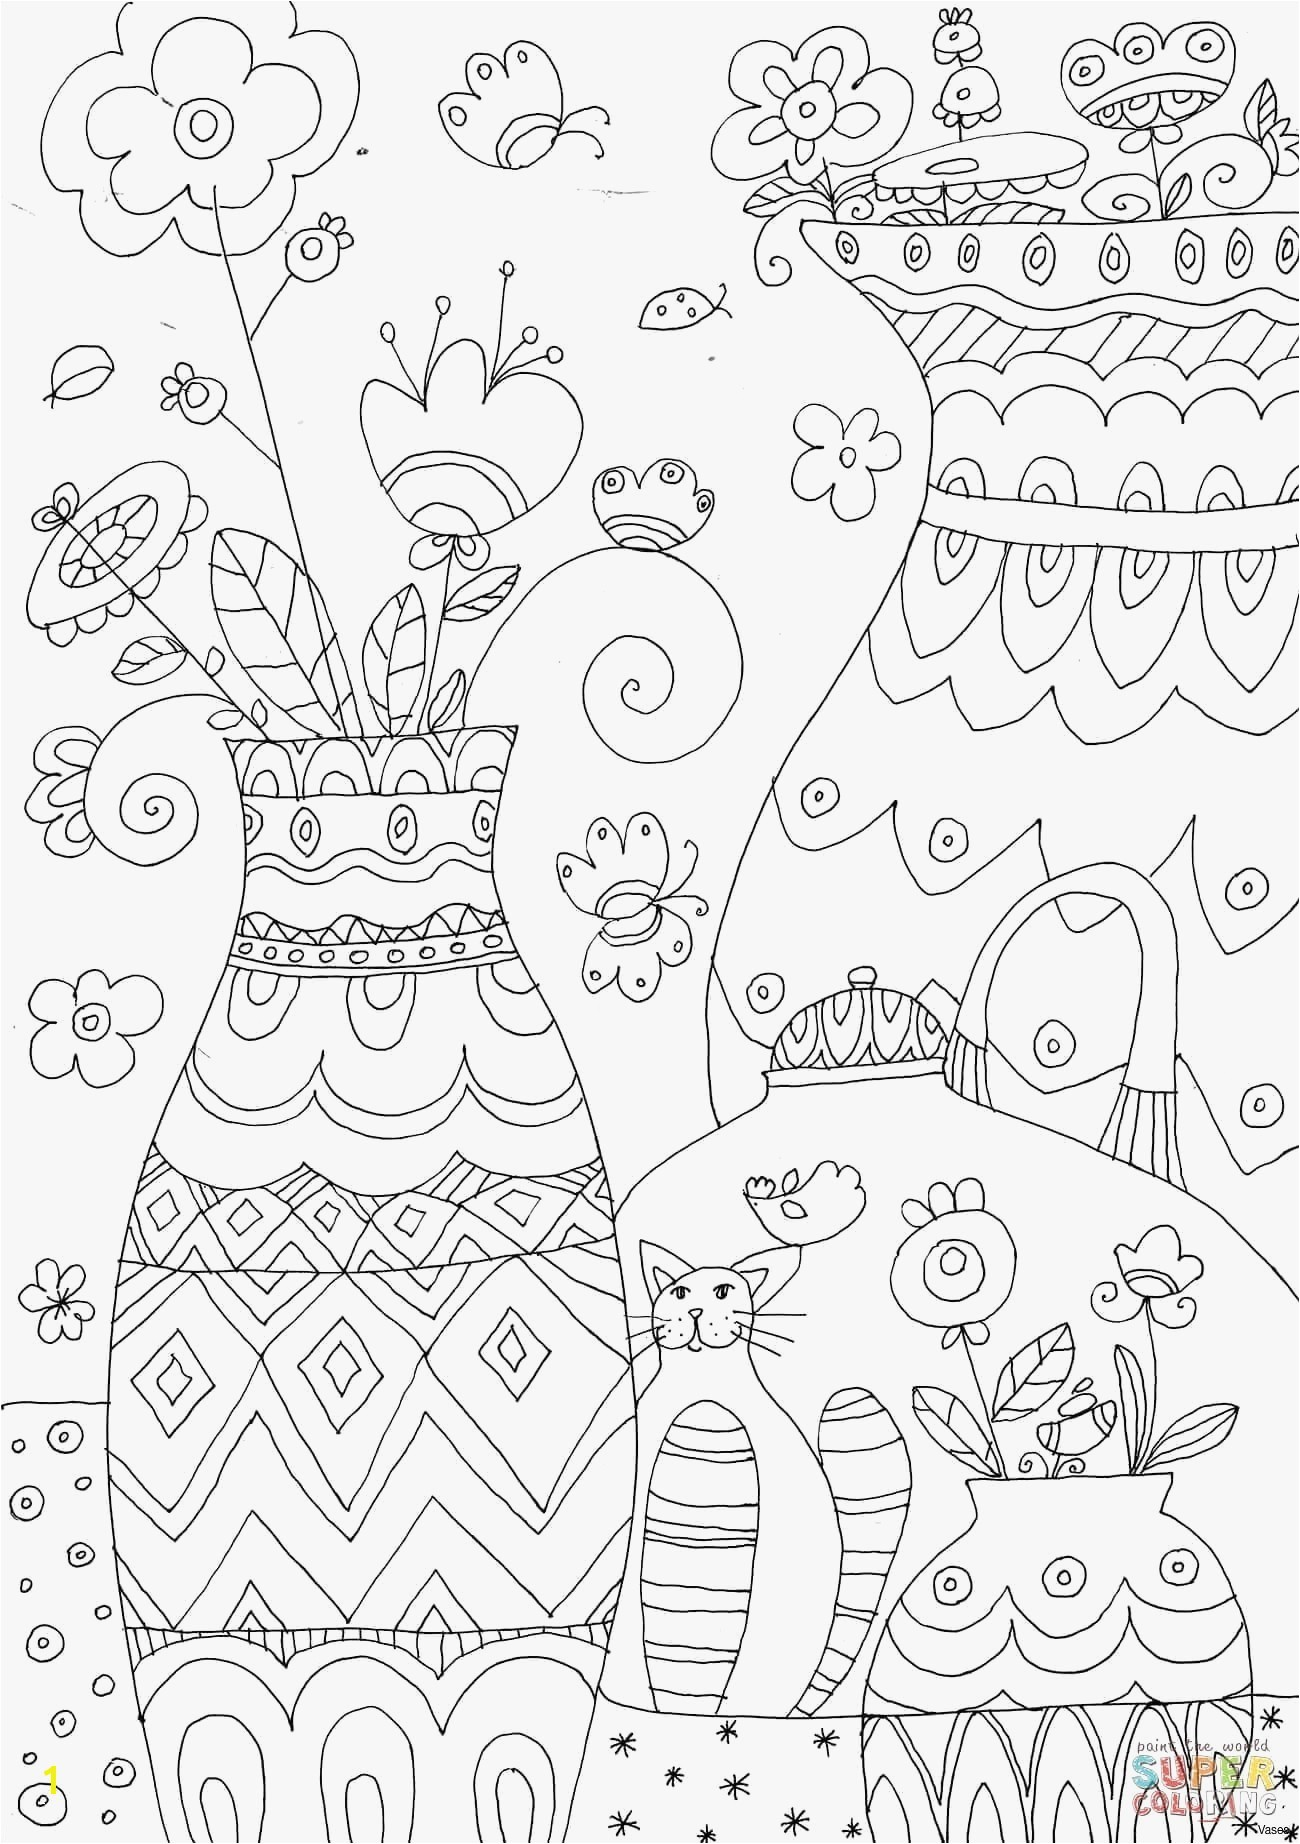 Free Printable Spring Coloring Pages Spring Coloring Pages for Adults Free Printable Spring Coloring